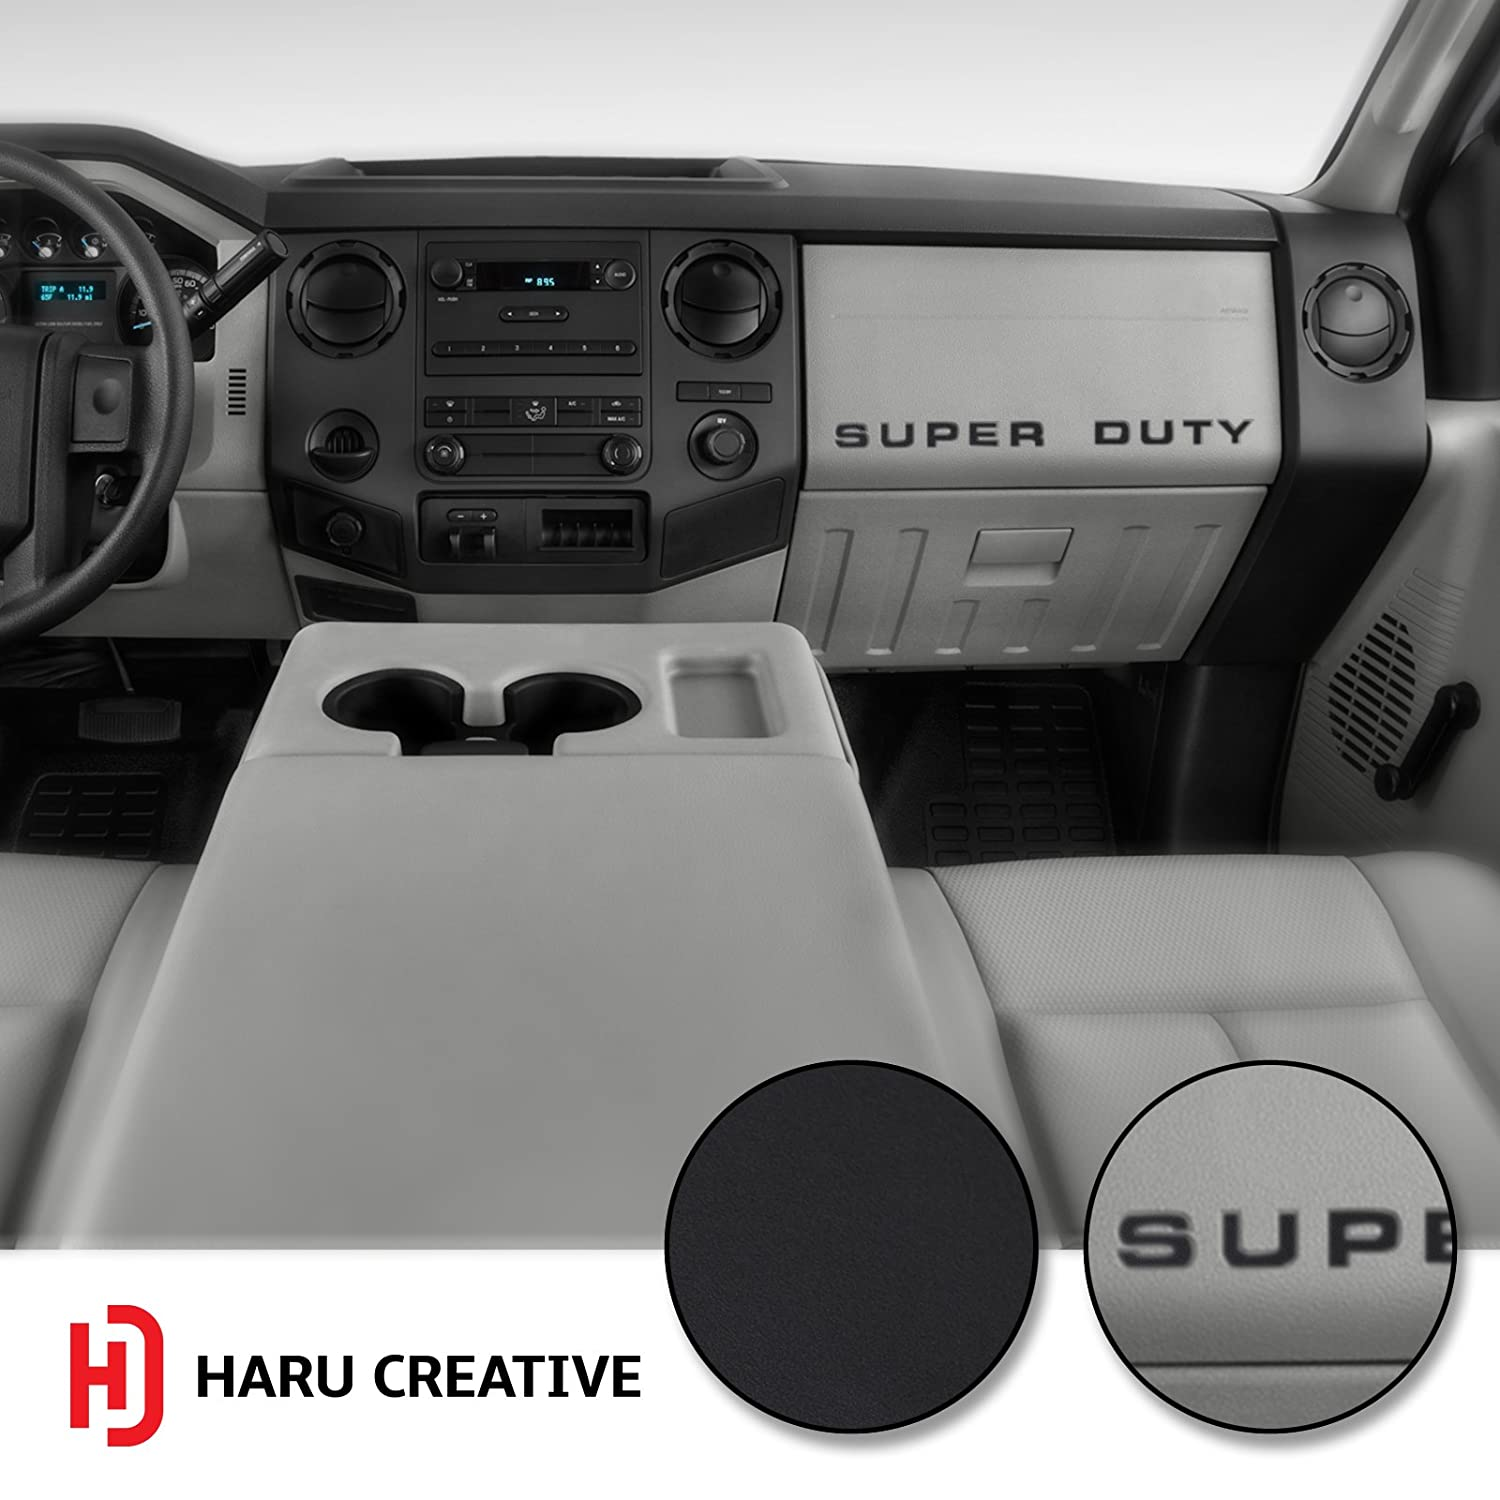 Dashboard Glove Box Letter Insert Overlay Vinyl Decal Sticker Compatible with and Fits Ford Super Duty F250 F350 F450 - Matte Red Haru Creative 2008-2016